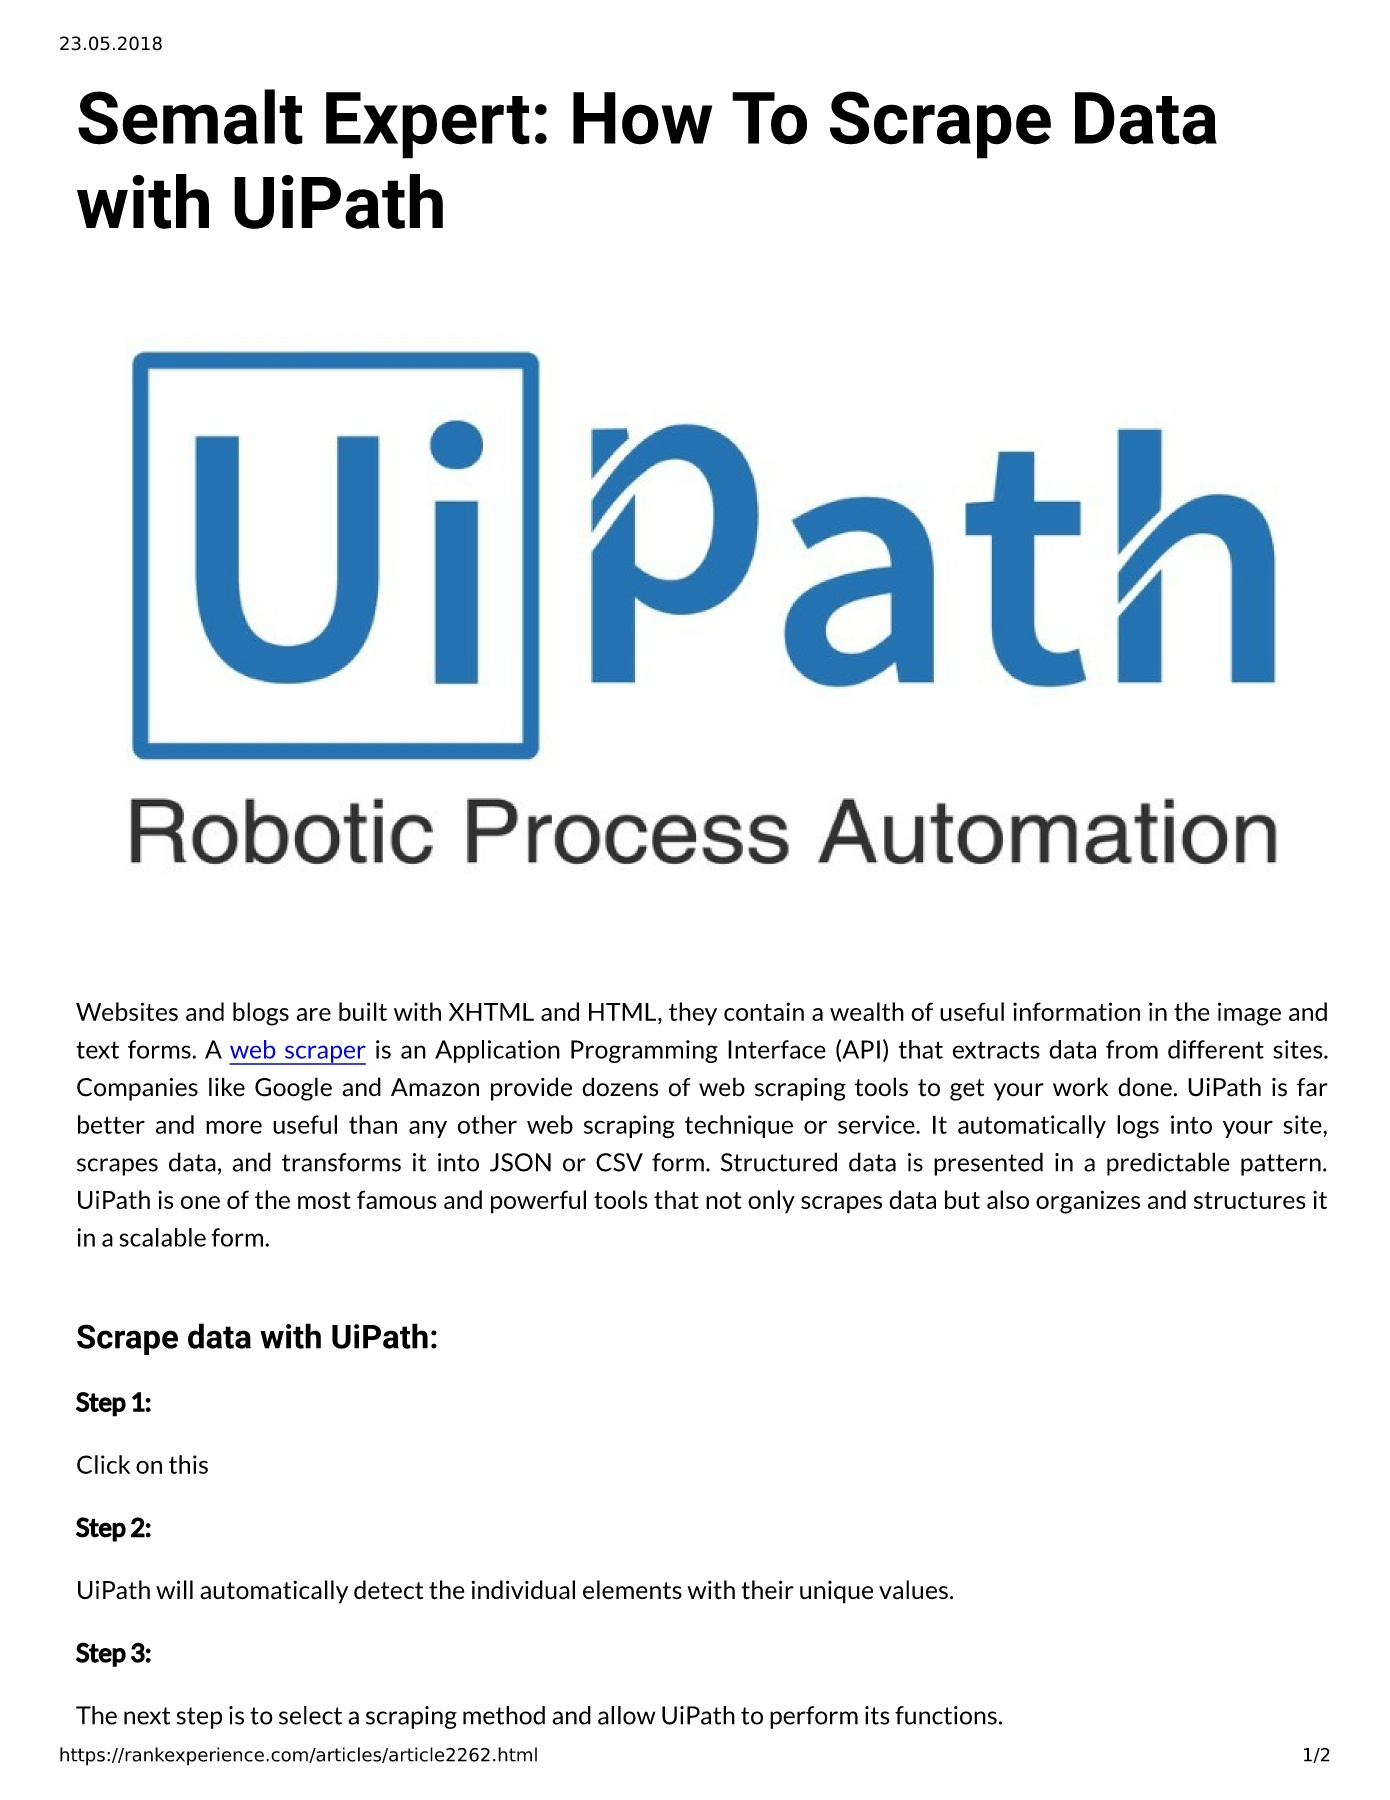 Semalt Expert: How To Scrape Data with UiPath Pages 1 - 2